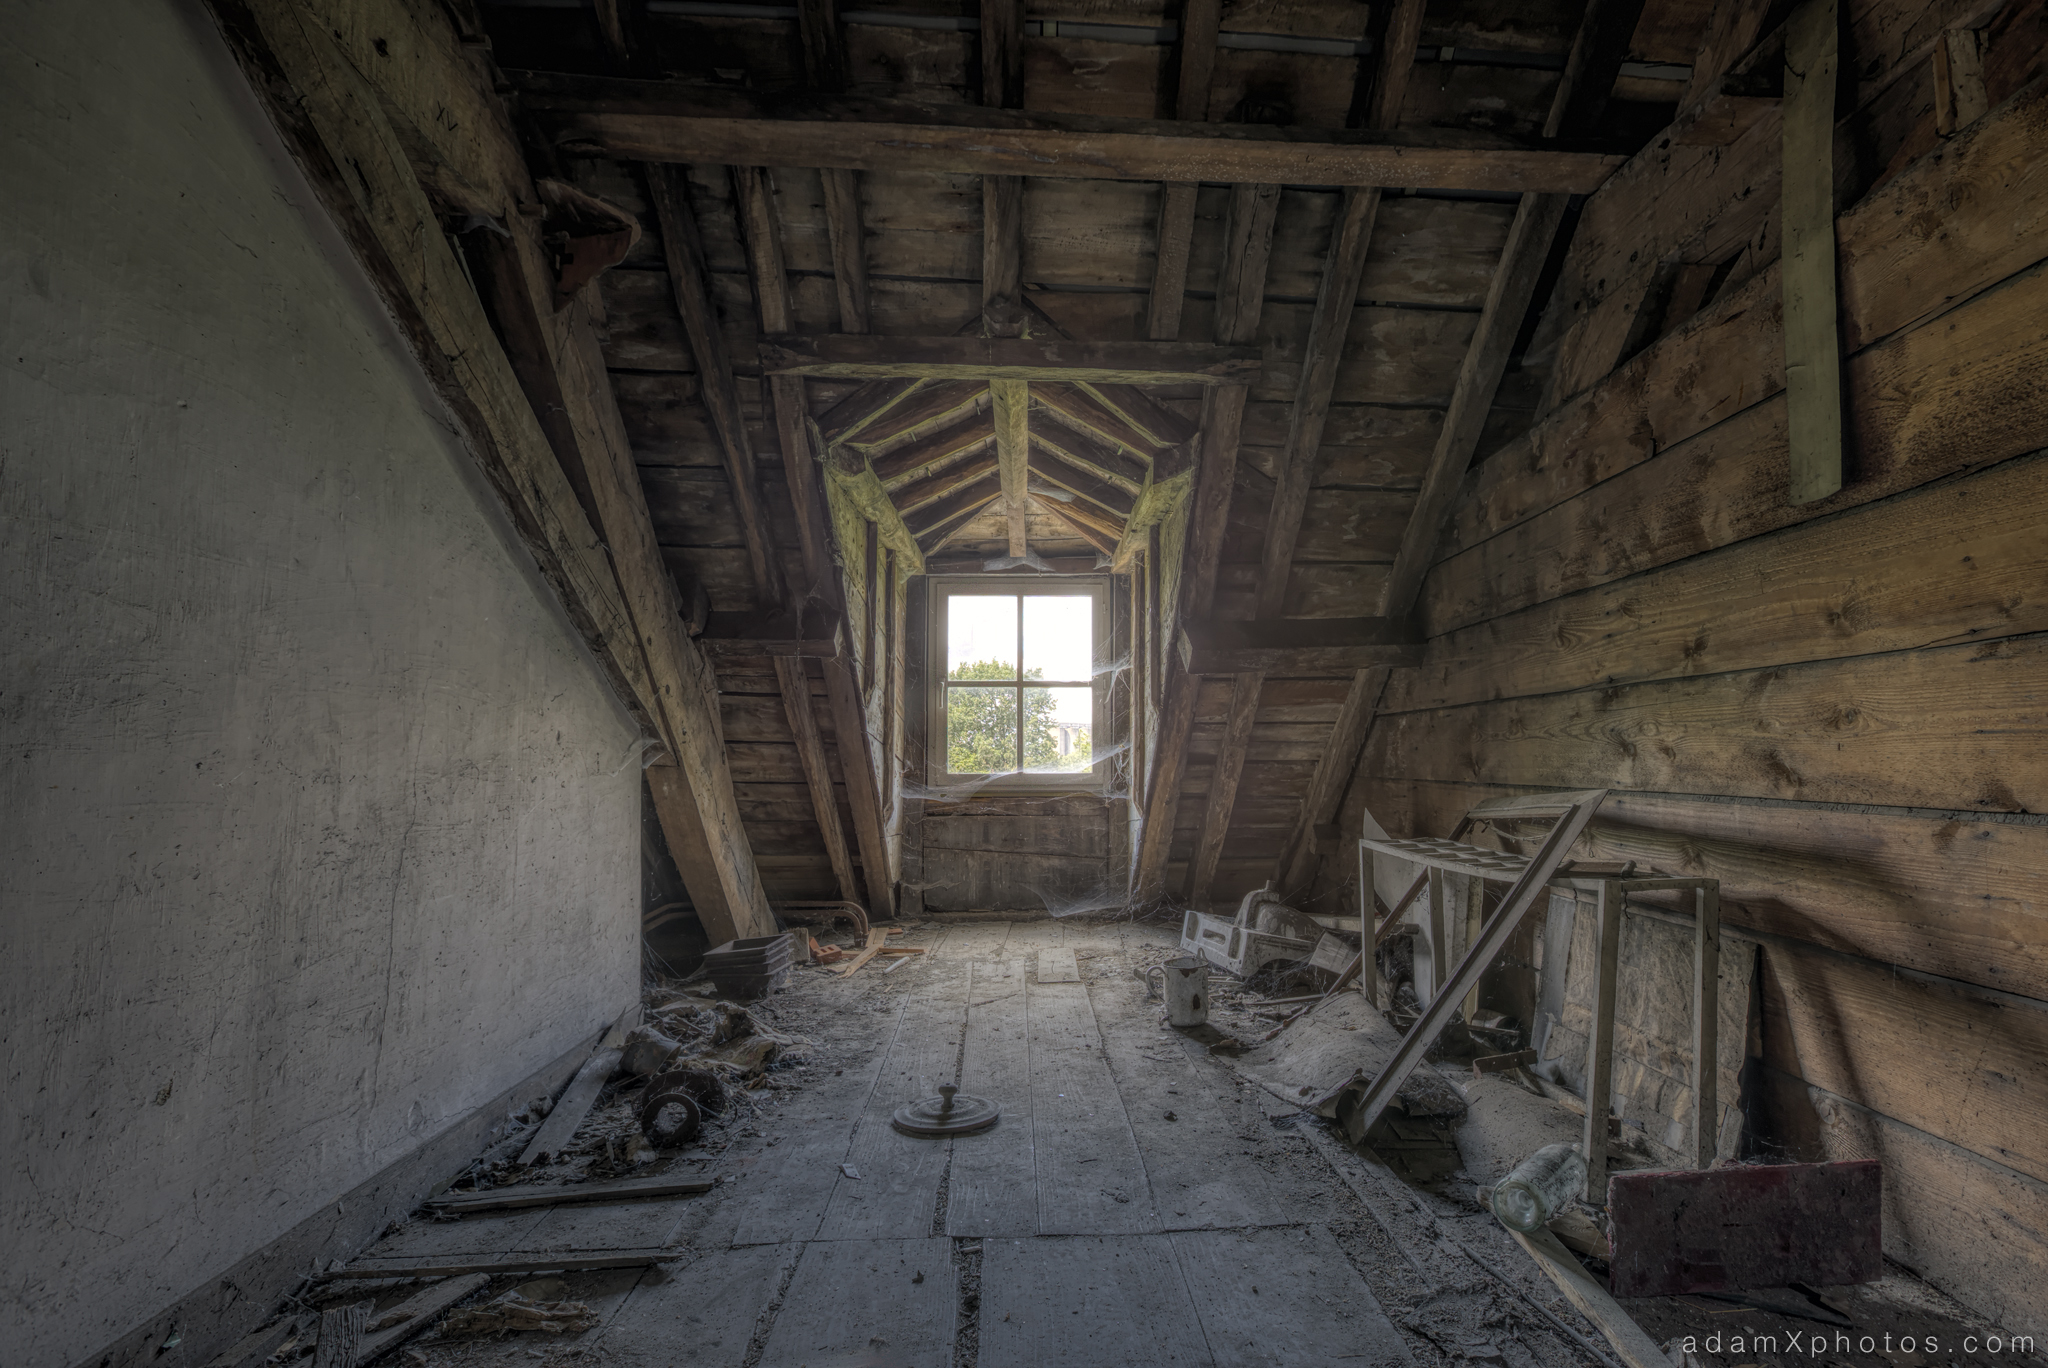 Adam X Chateau de la Chapelle urbex urban exploration belgium abandoned attic loft